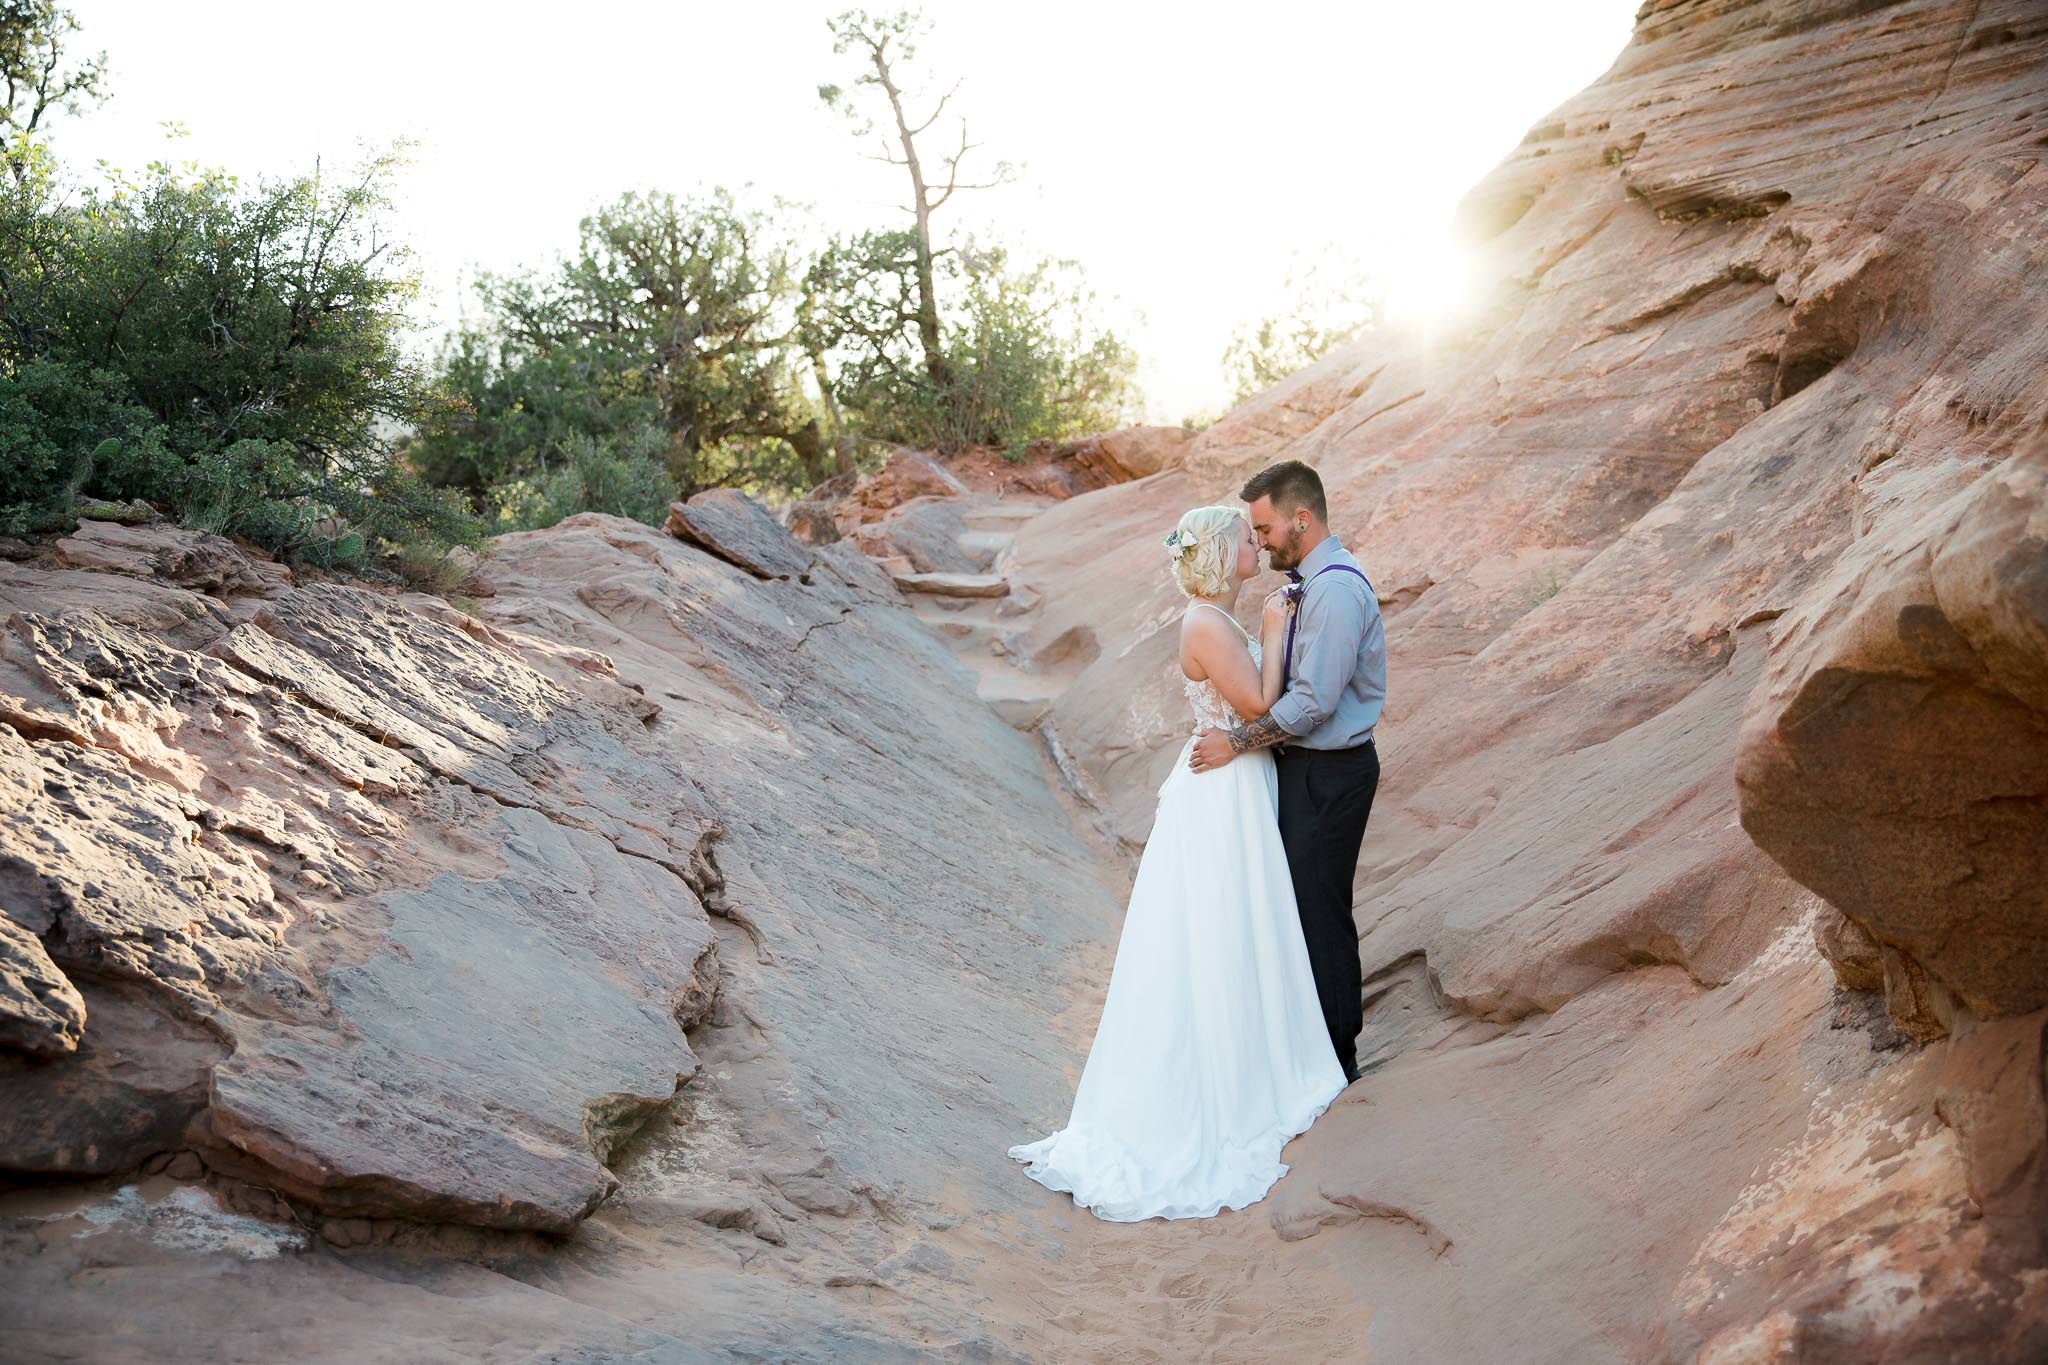 Couple snuggle after their elopement in Zion National Park